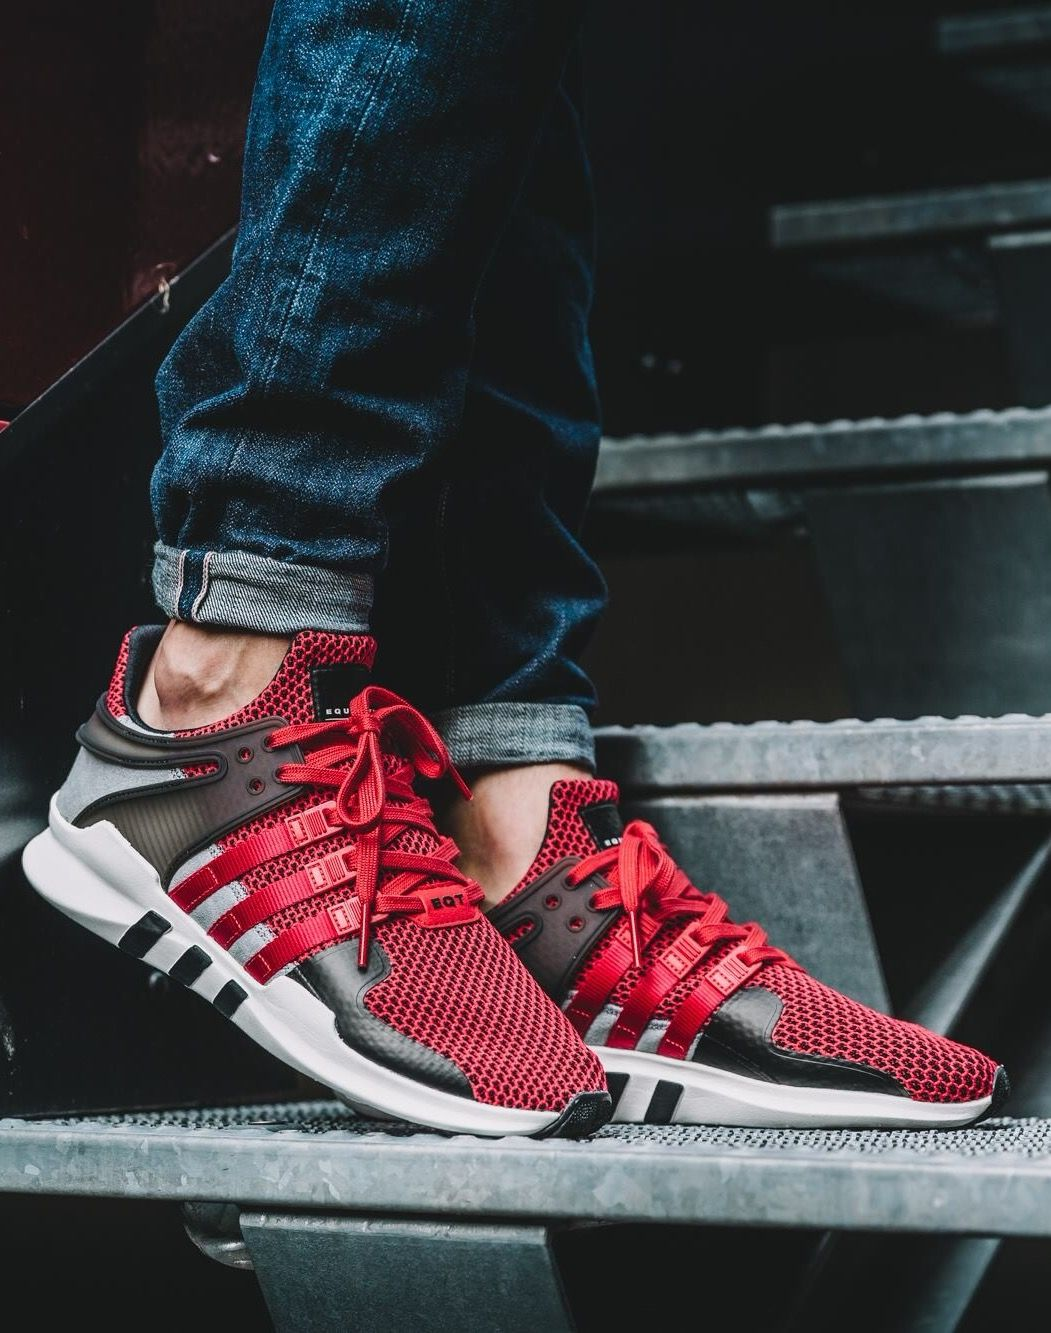 adidas EQT Support ADV: Red | Sneakers men fashion, Sneakers